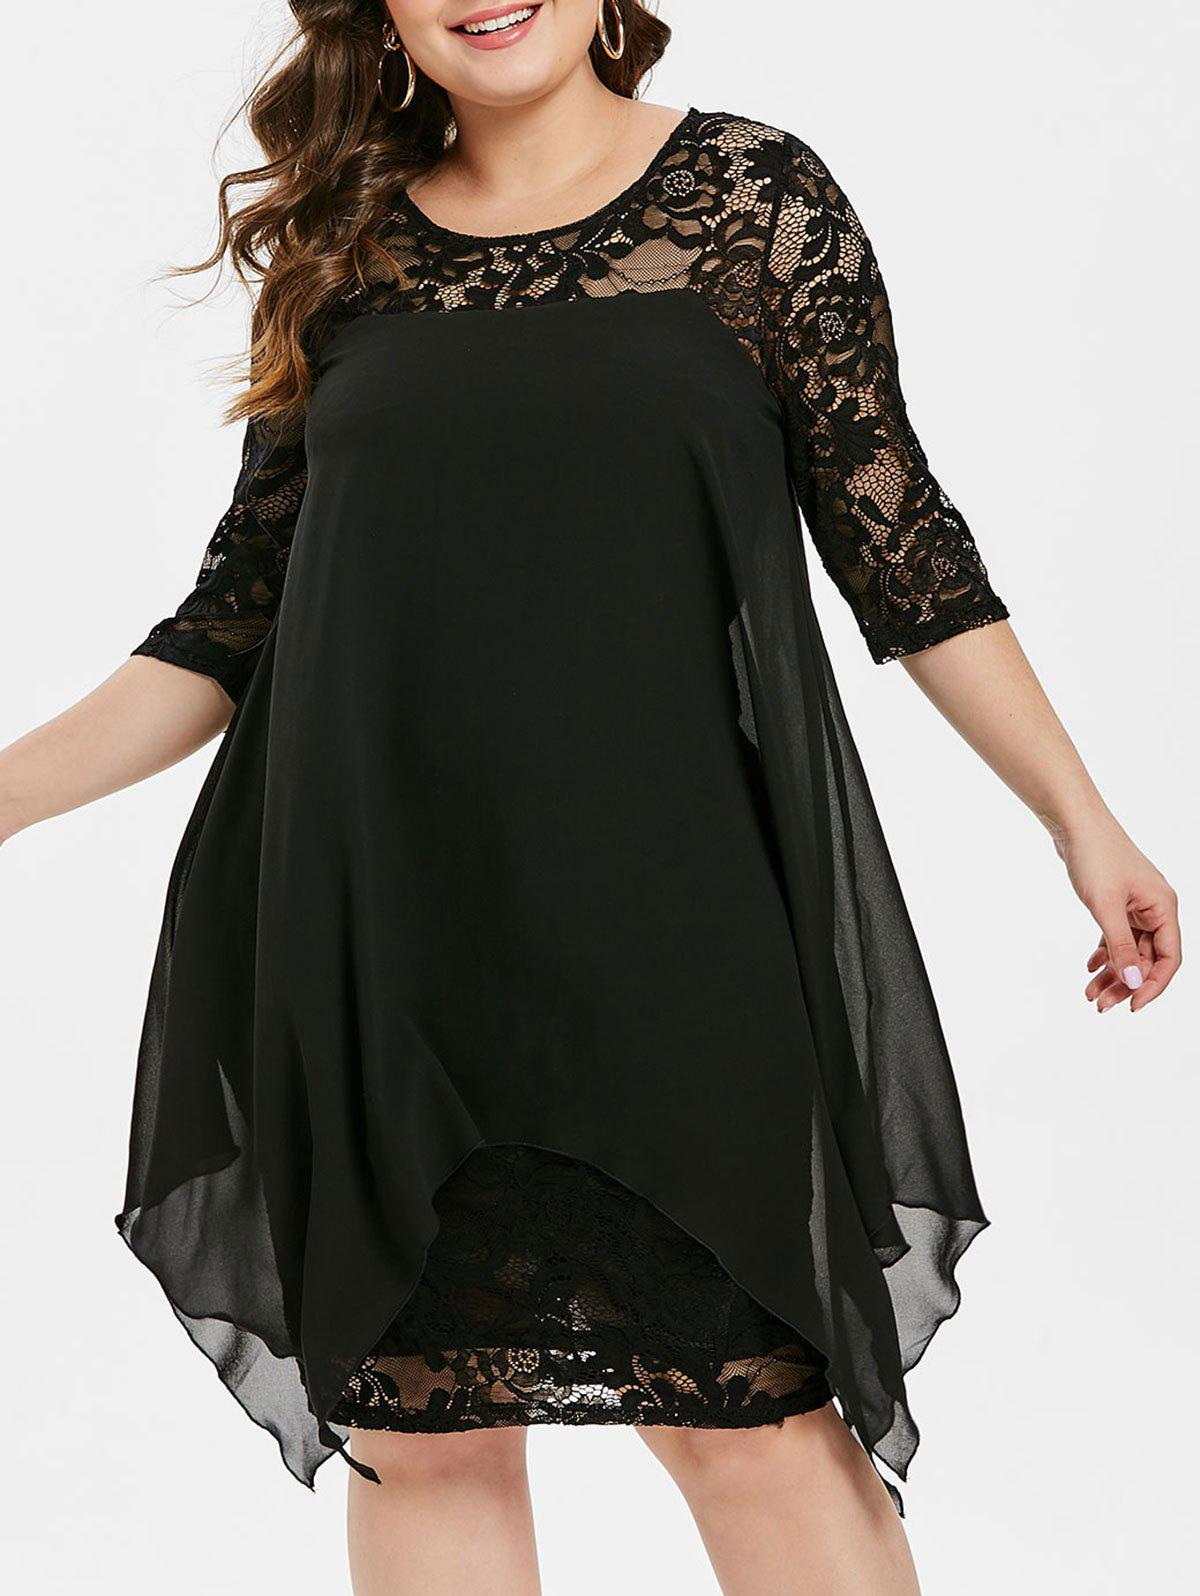 Affordable Plus Size Sheer Handkerchief Lace Dress